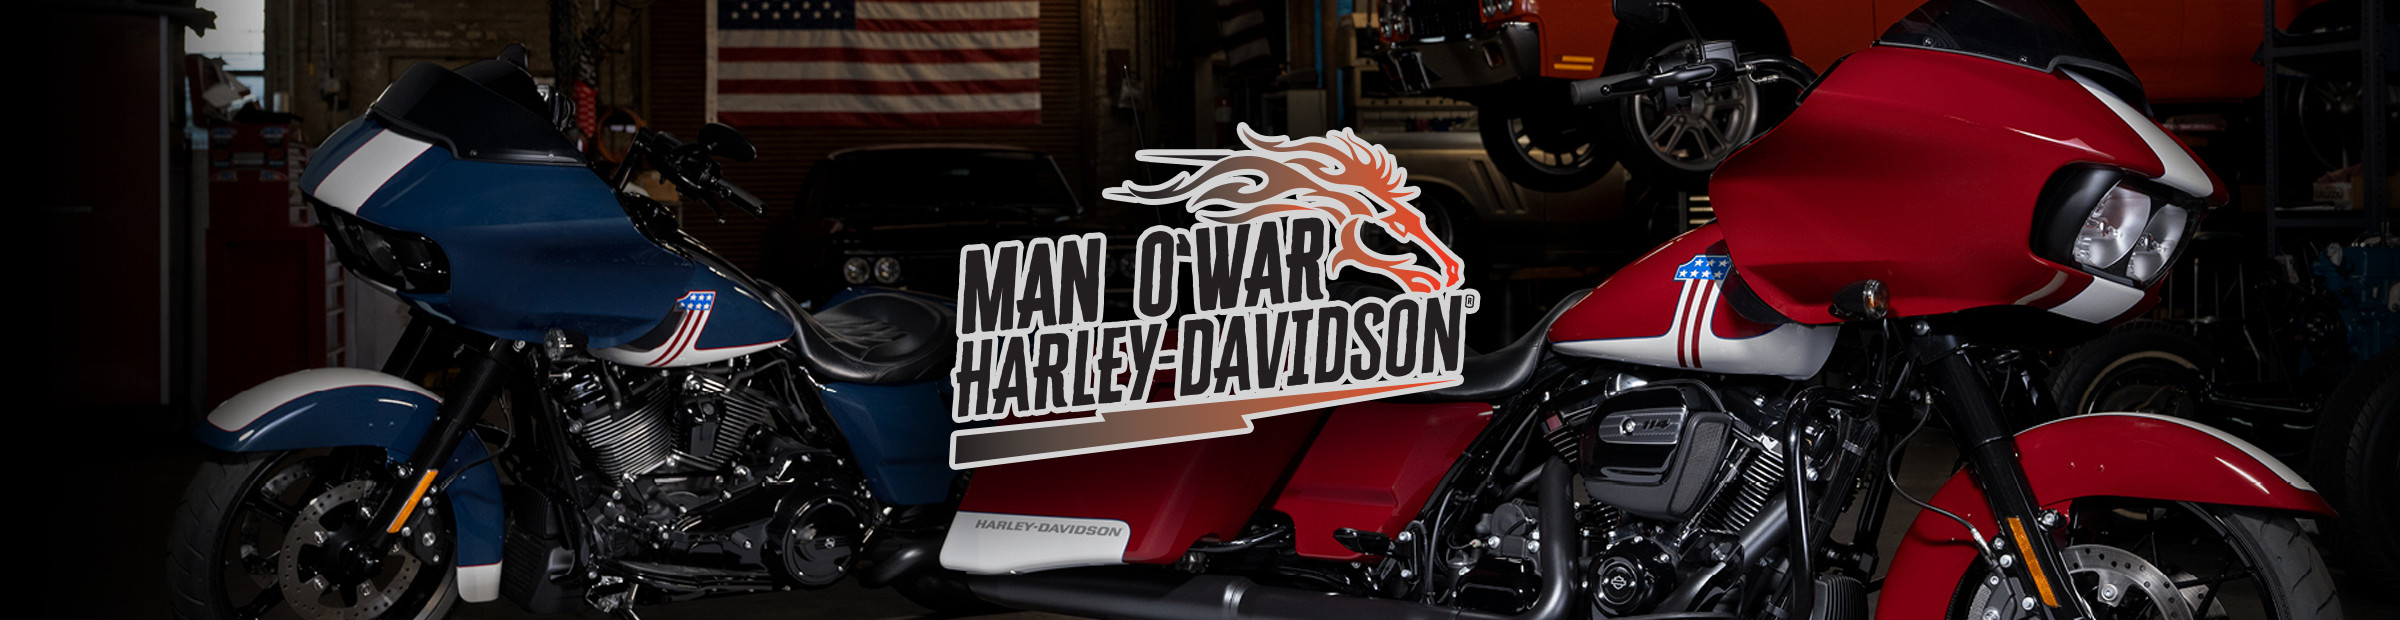 Service Department | Man O' War Harley-Davidson